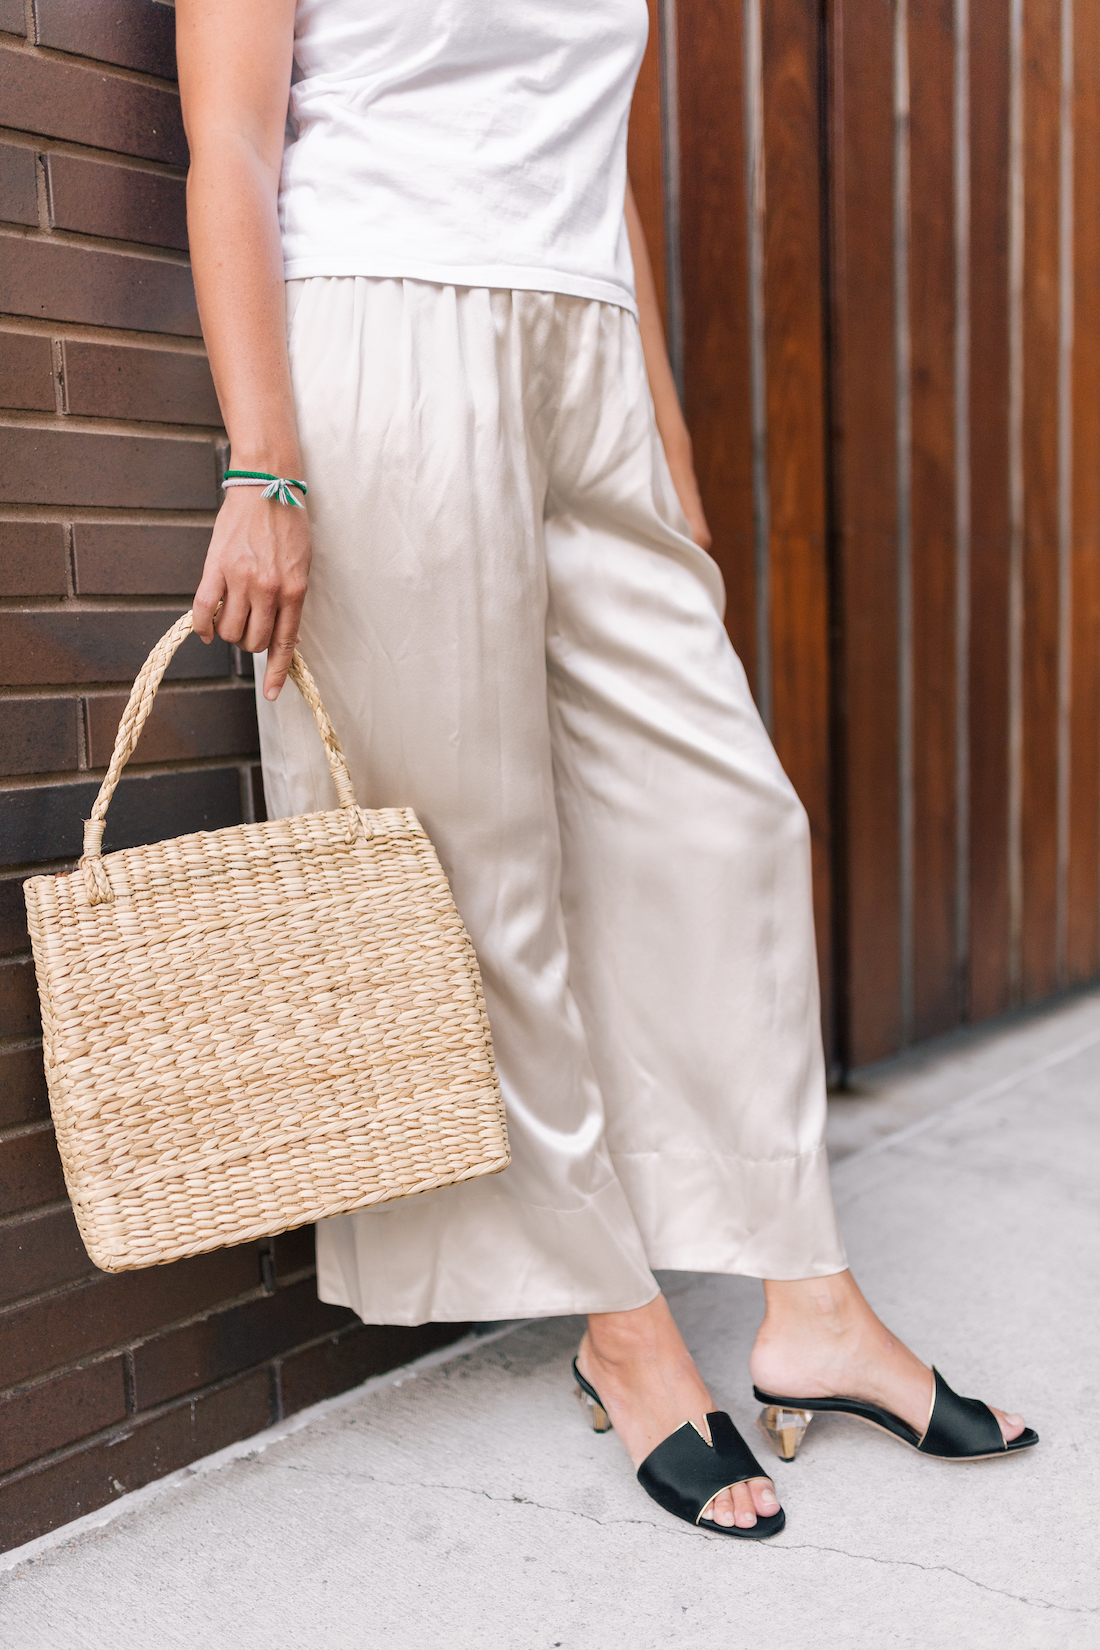 THEORY Smocked silk-satin culottes / Poolside Bags The Masha Tote Bag / Marion Parke Barbie Slides